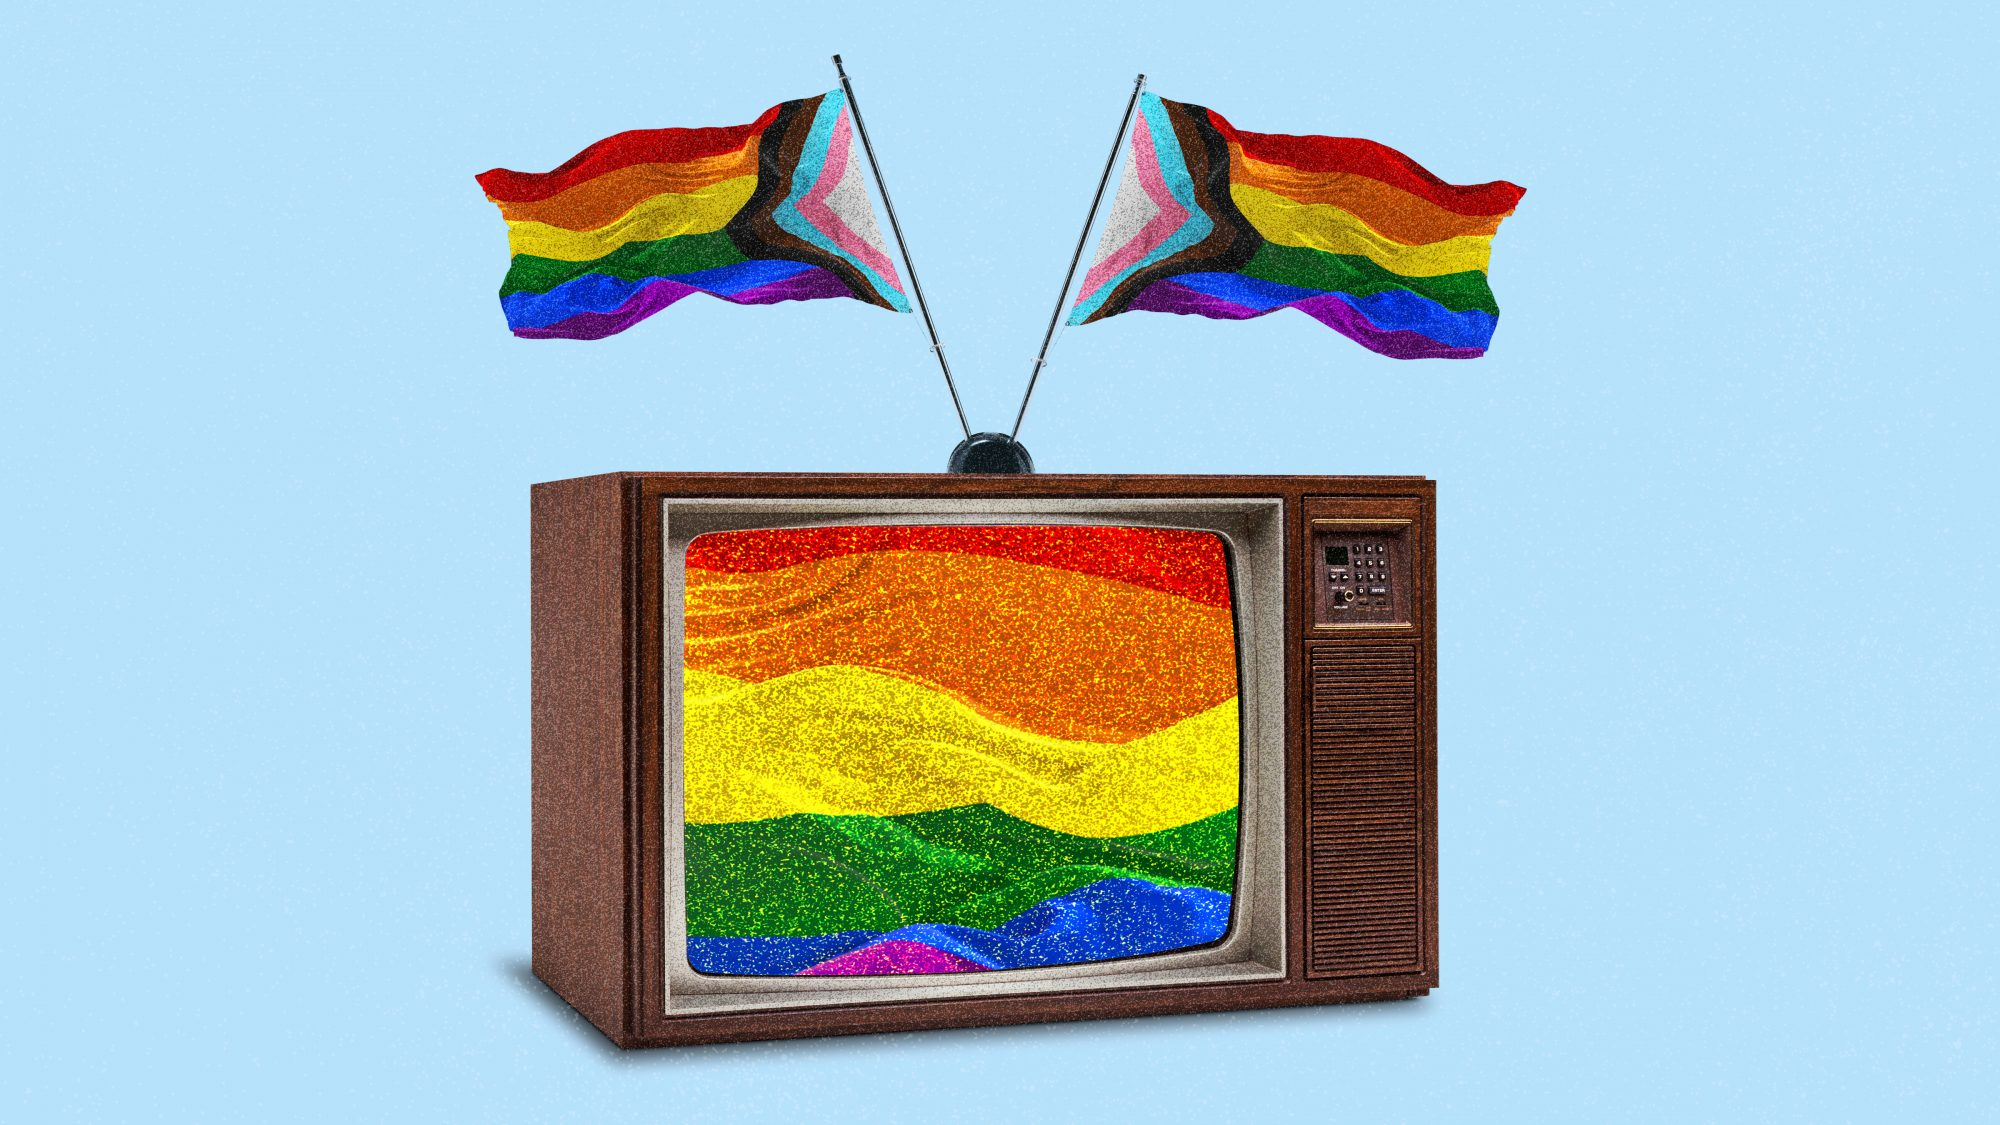 What Is Queerbaiting? Here's What The Manipulative Marketing Tactic Looks Like — And Why It's Harmful